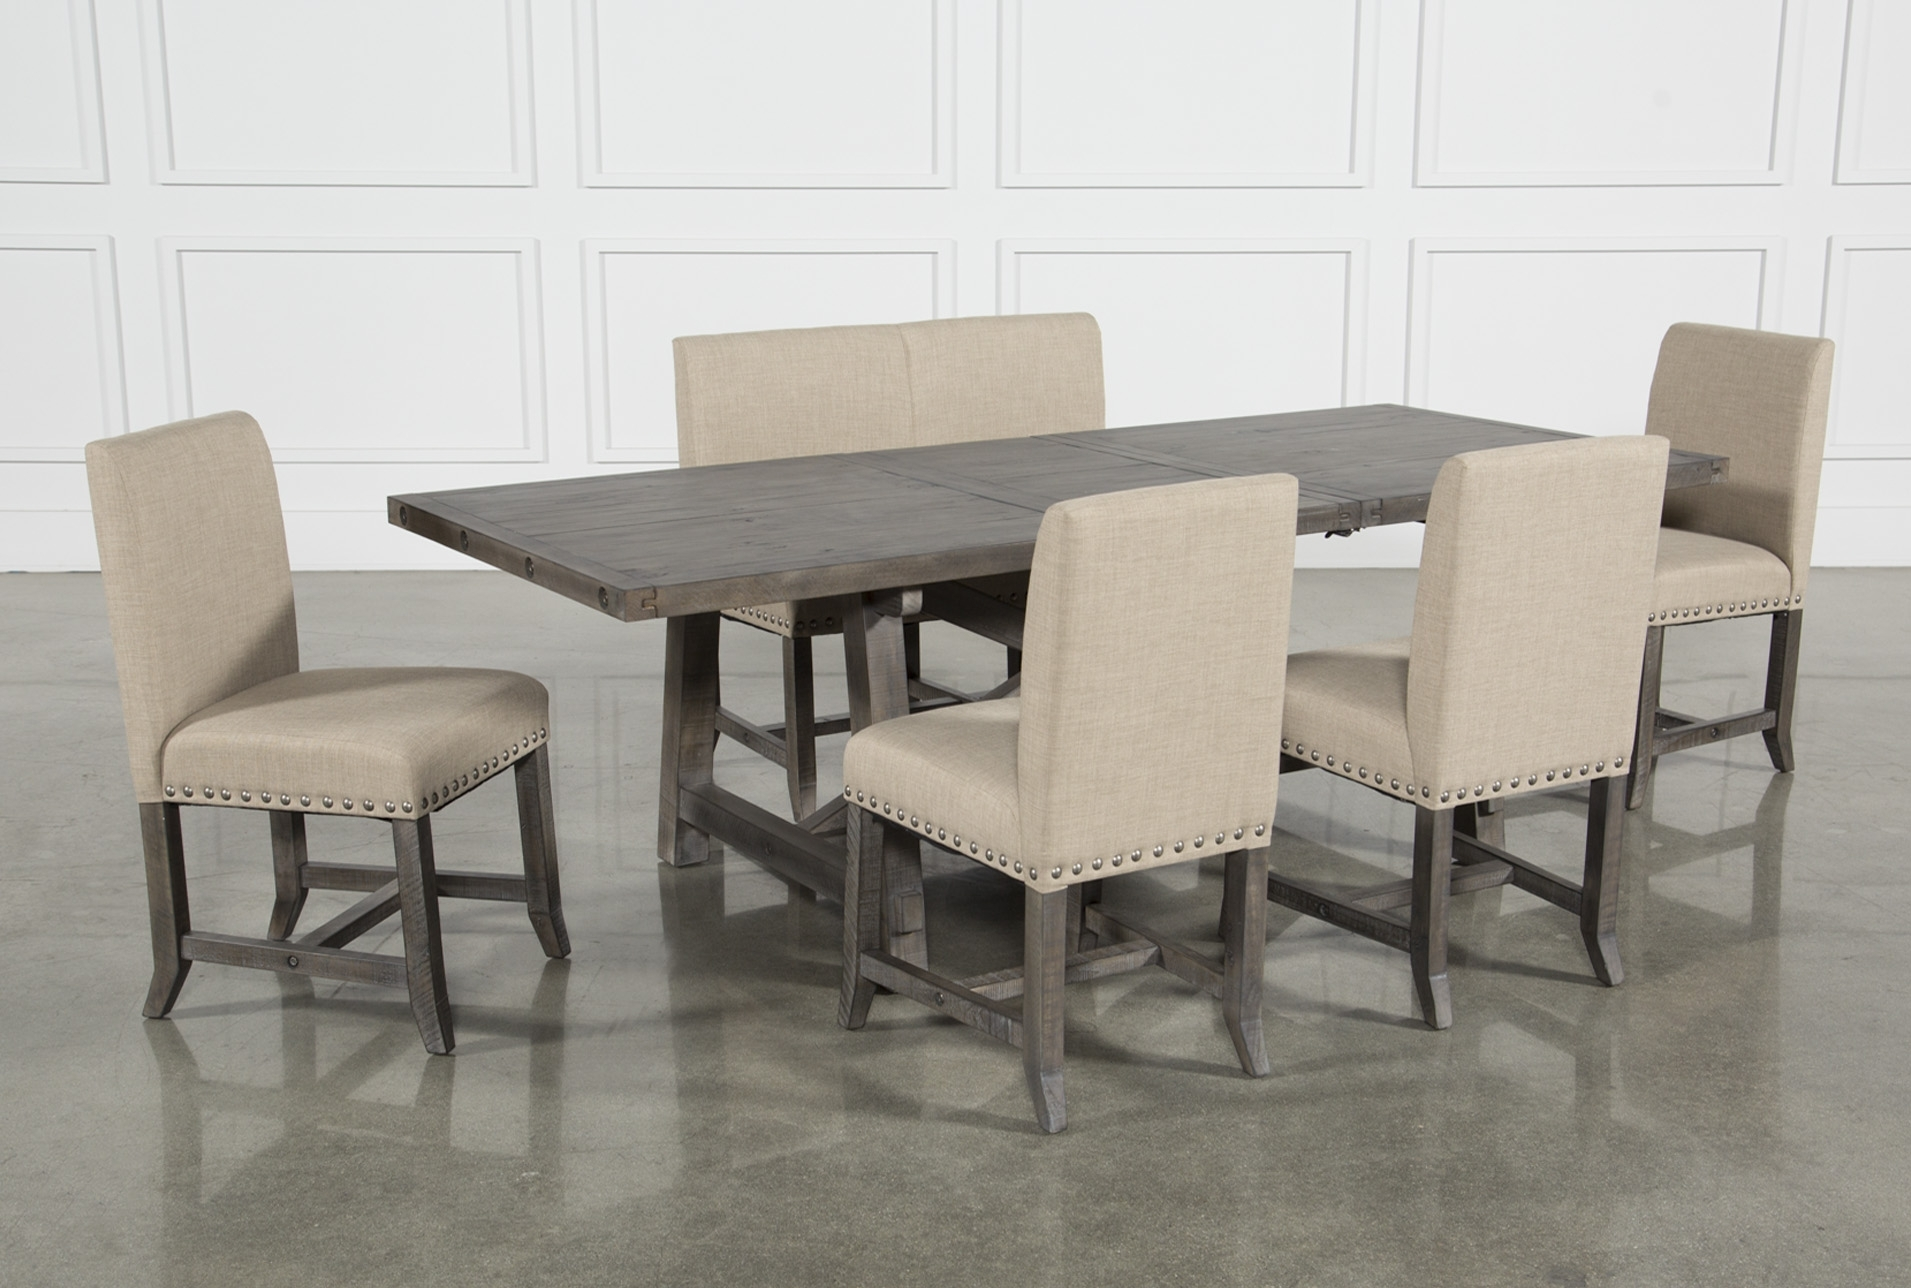 Jaxon Grey 6 Piece Rectangle Extension Dining Set W/bench & Uph Pertaining To Most Current Jaxon Grey 6 Piece Rectangle Extension Dining Sets With Bench & Wood Chairs (Image 10 of 20)